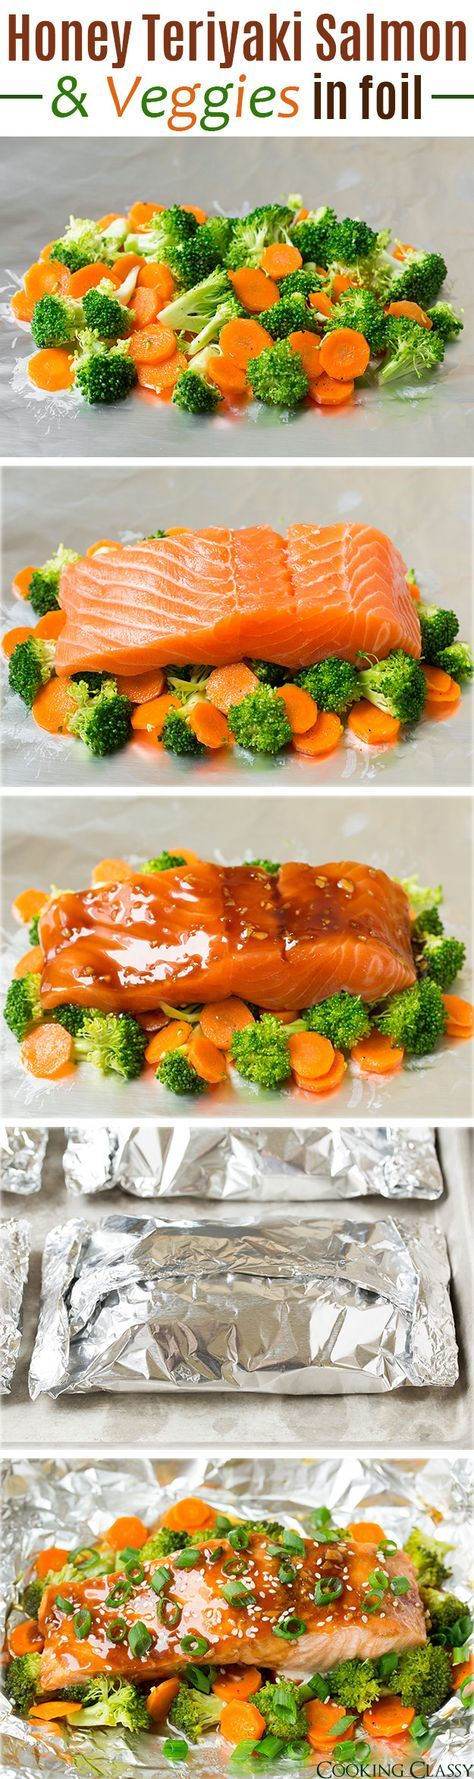 Honey Teriyaki Salmon and Veggies in Foil - an easy dinner the whole family will love! You've got to try this salmon, it's so delicious!